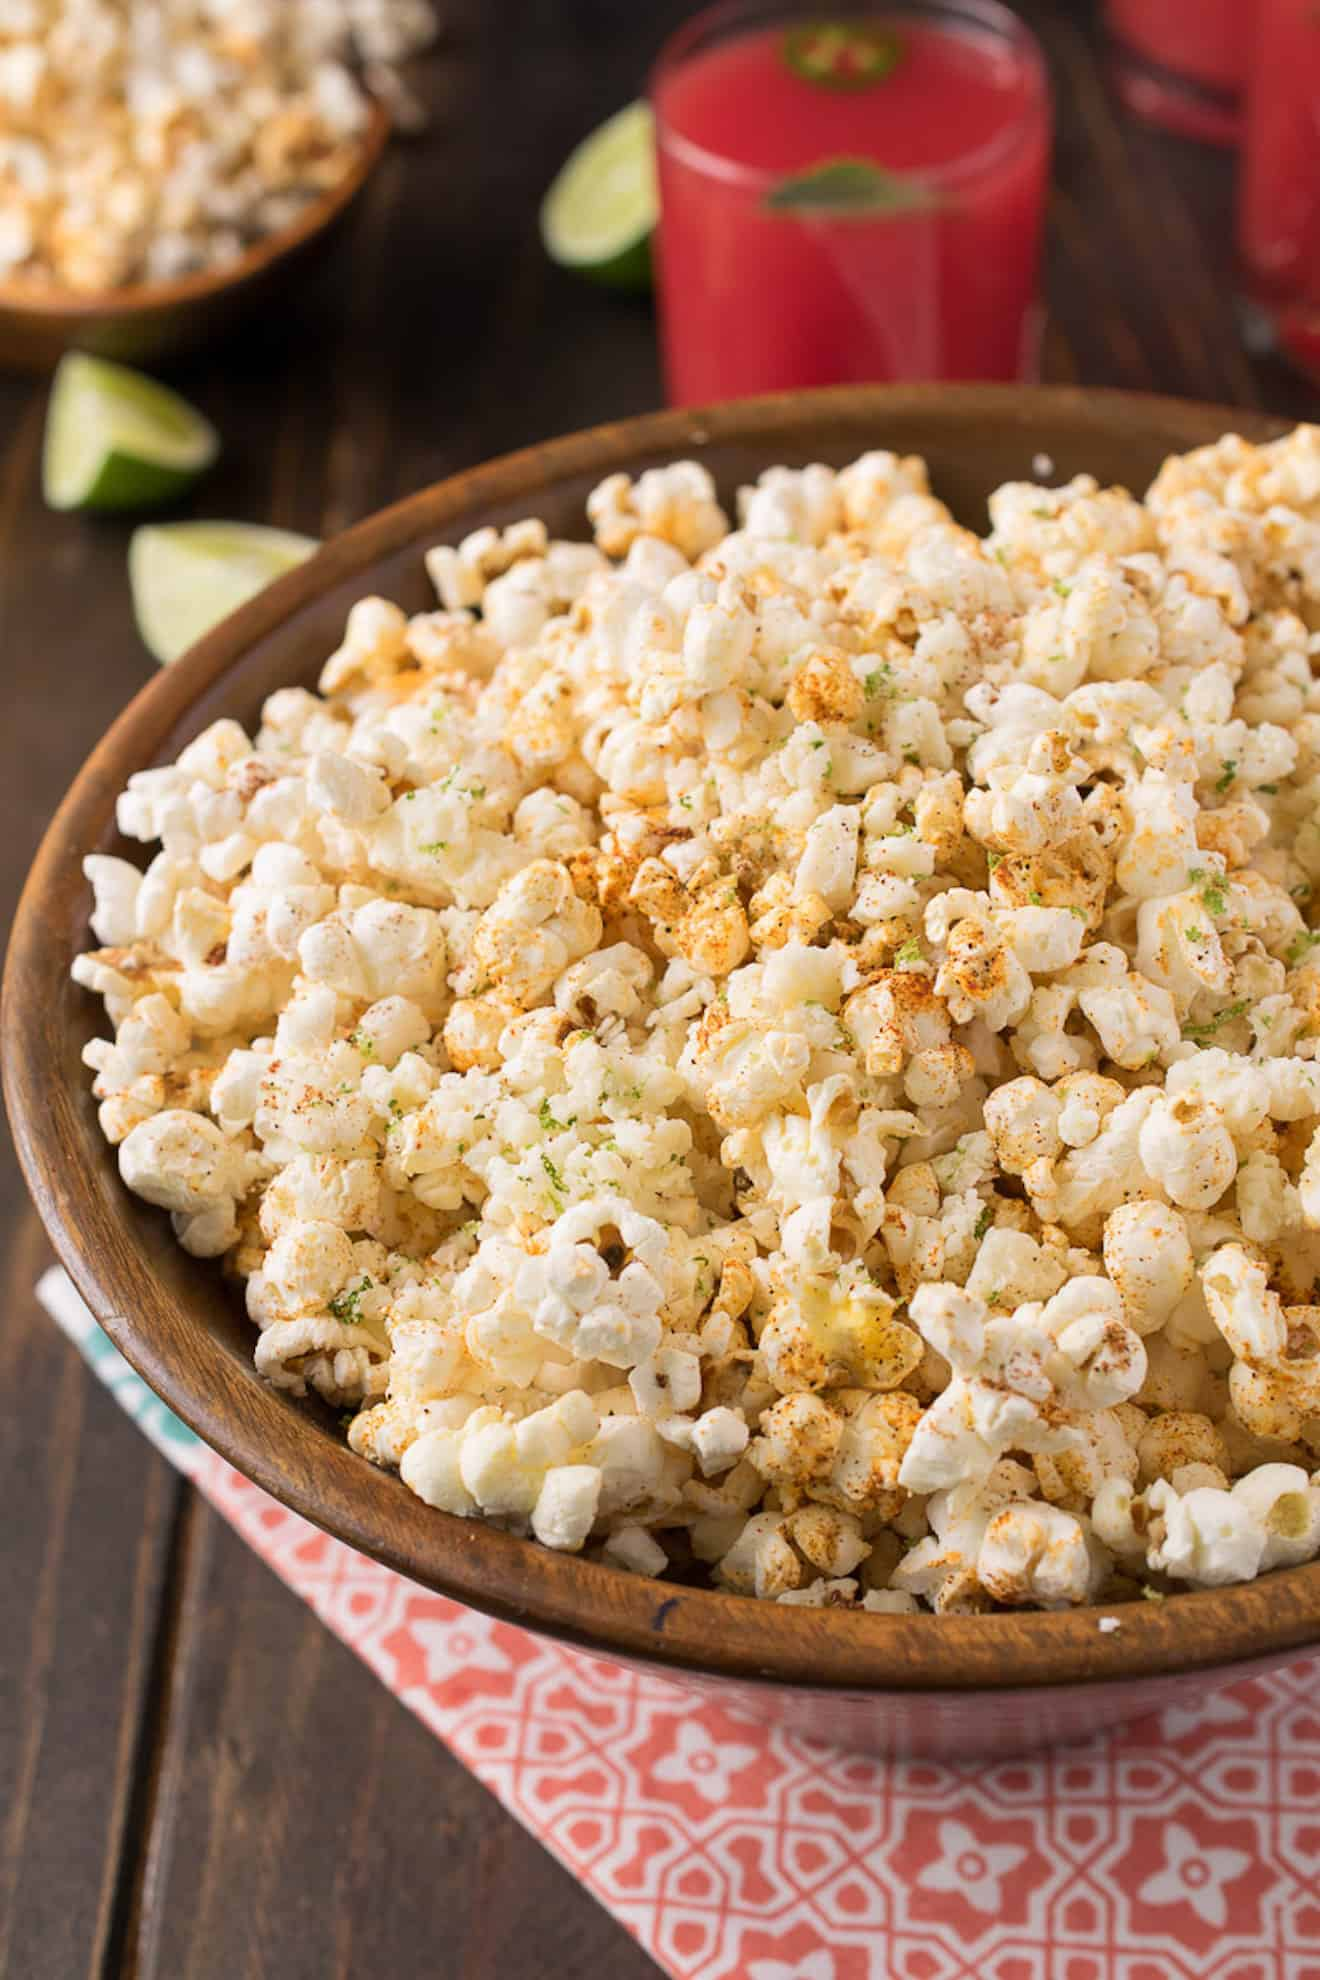 A large round bowl filled with Mexican popcorn